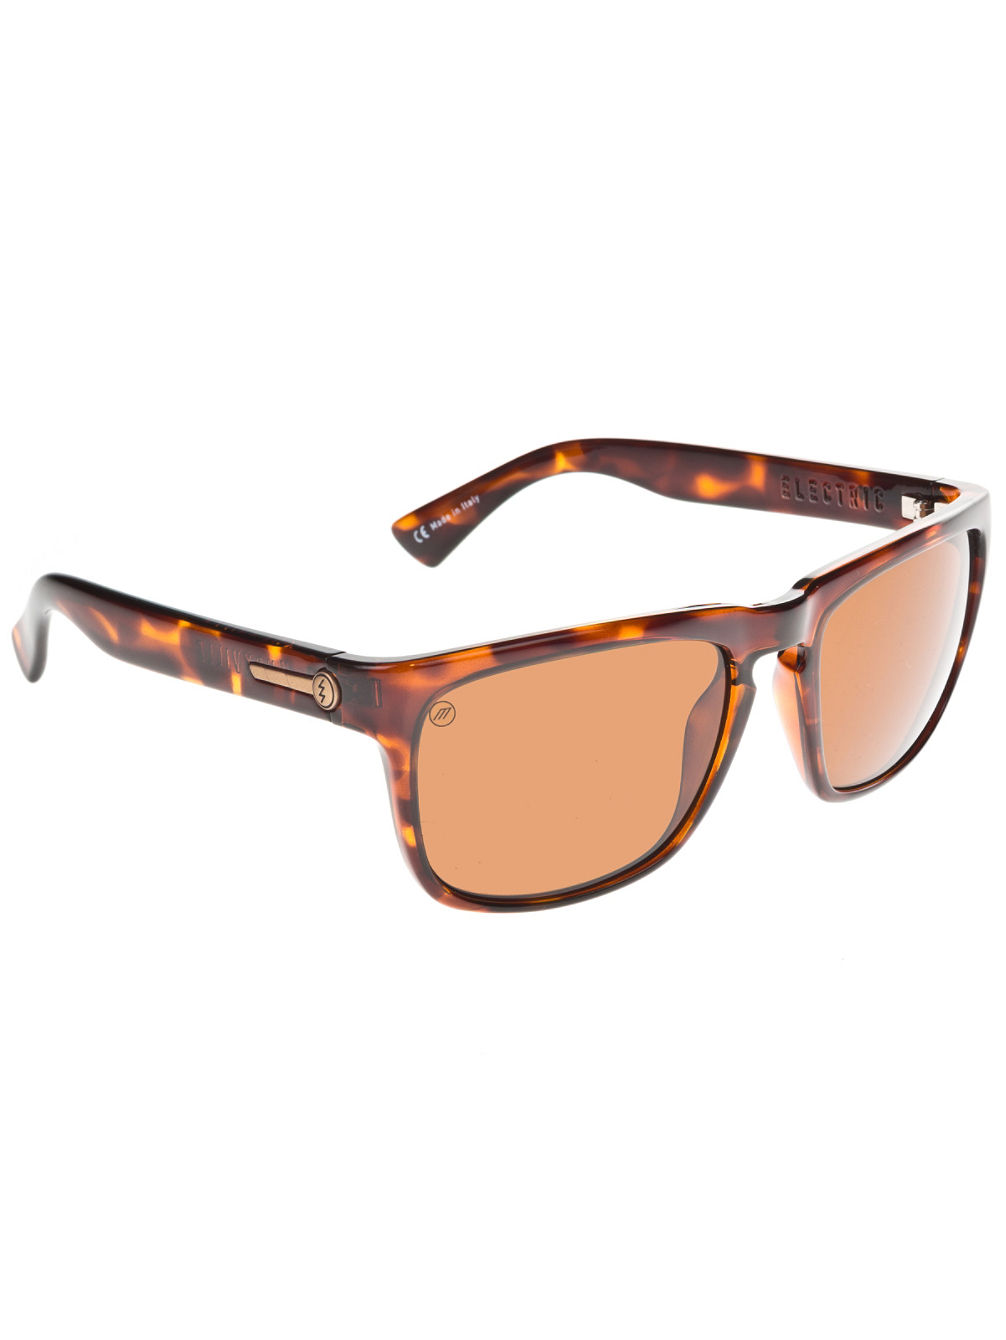 Knoxville Tortoise Shell